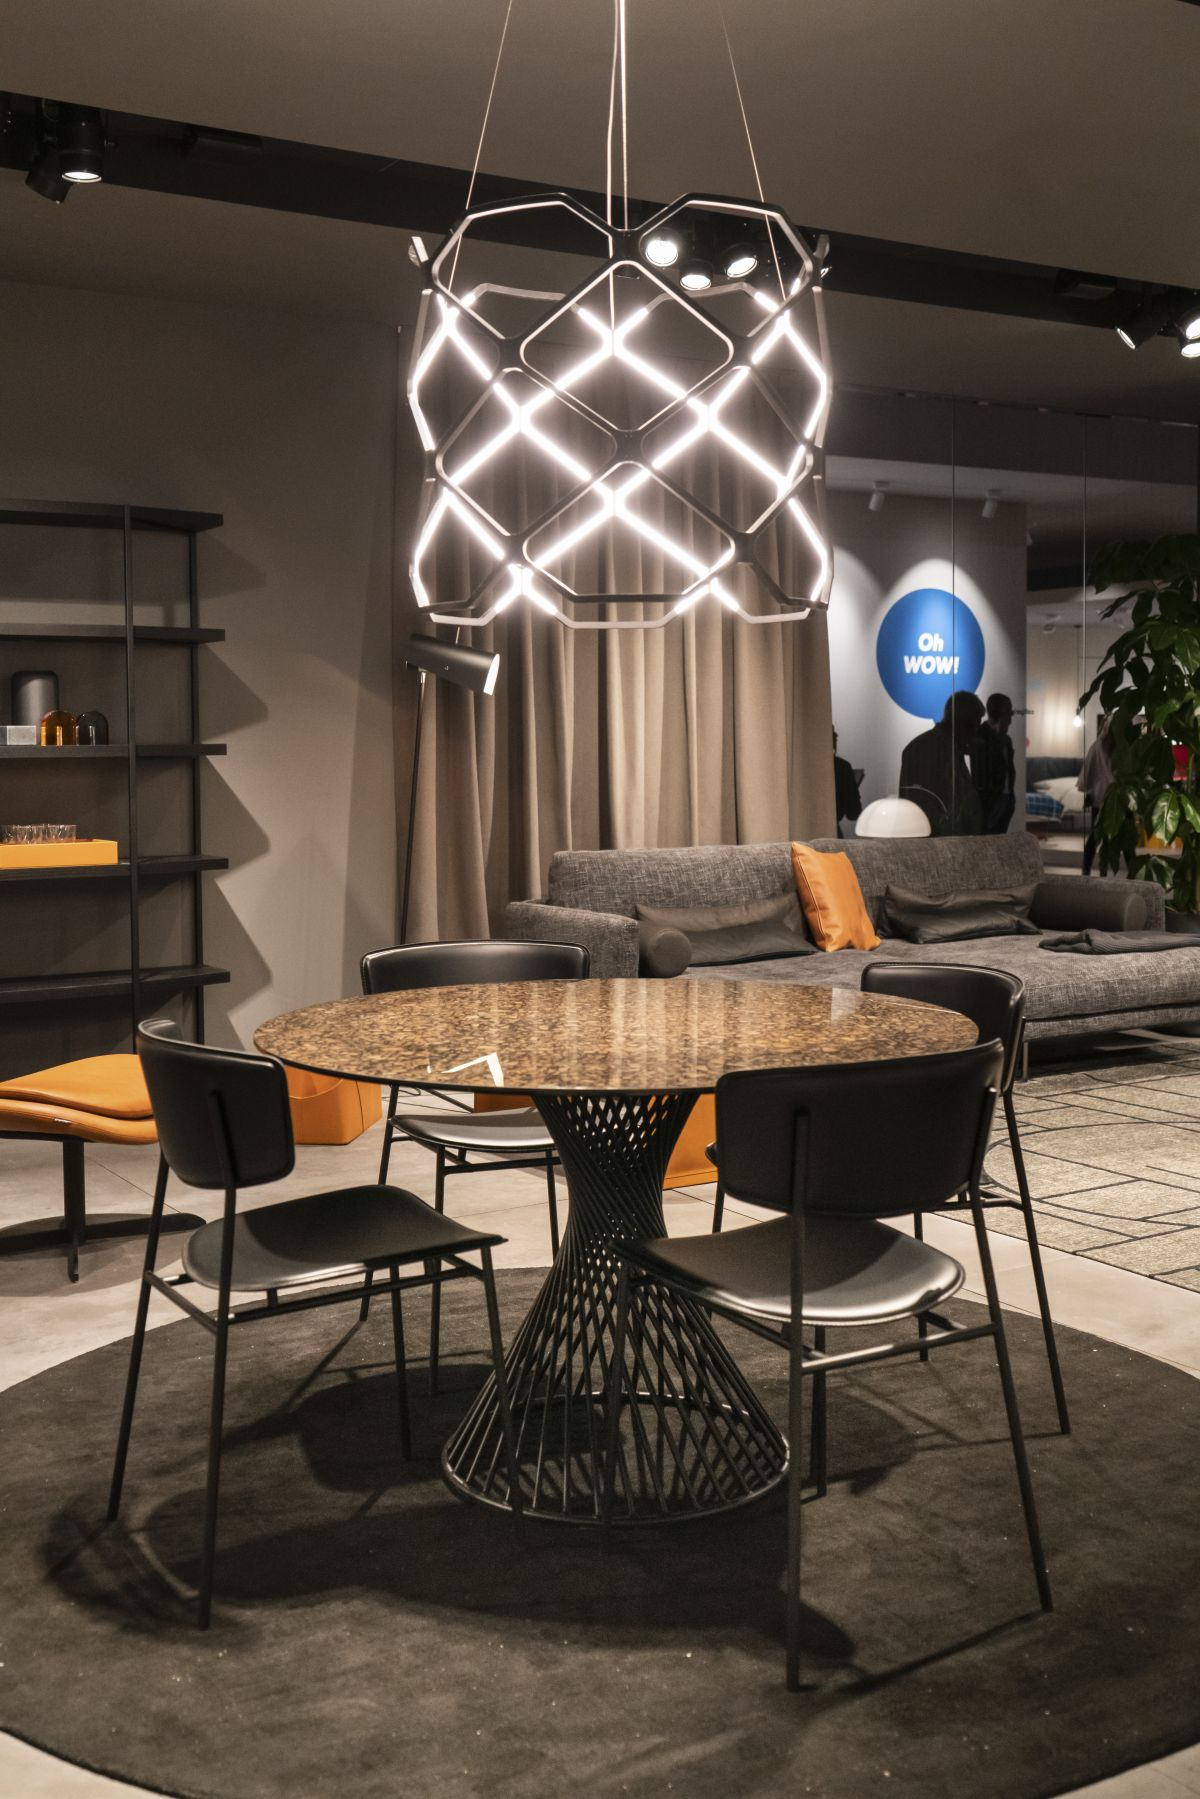 Beautiful pendant lamp over table - How To Design And Decorate The Space Around Your Dining Table